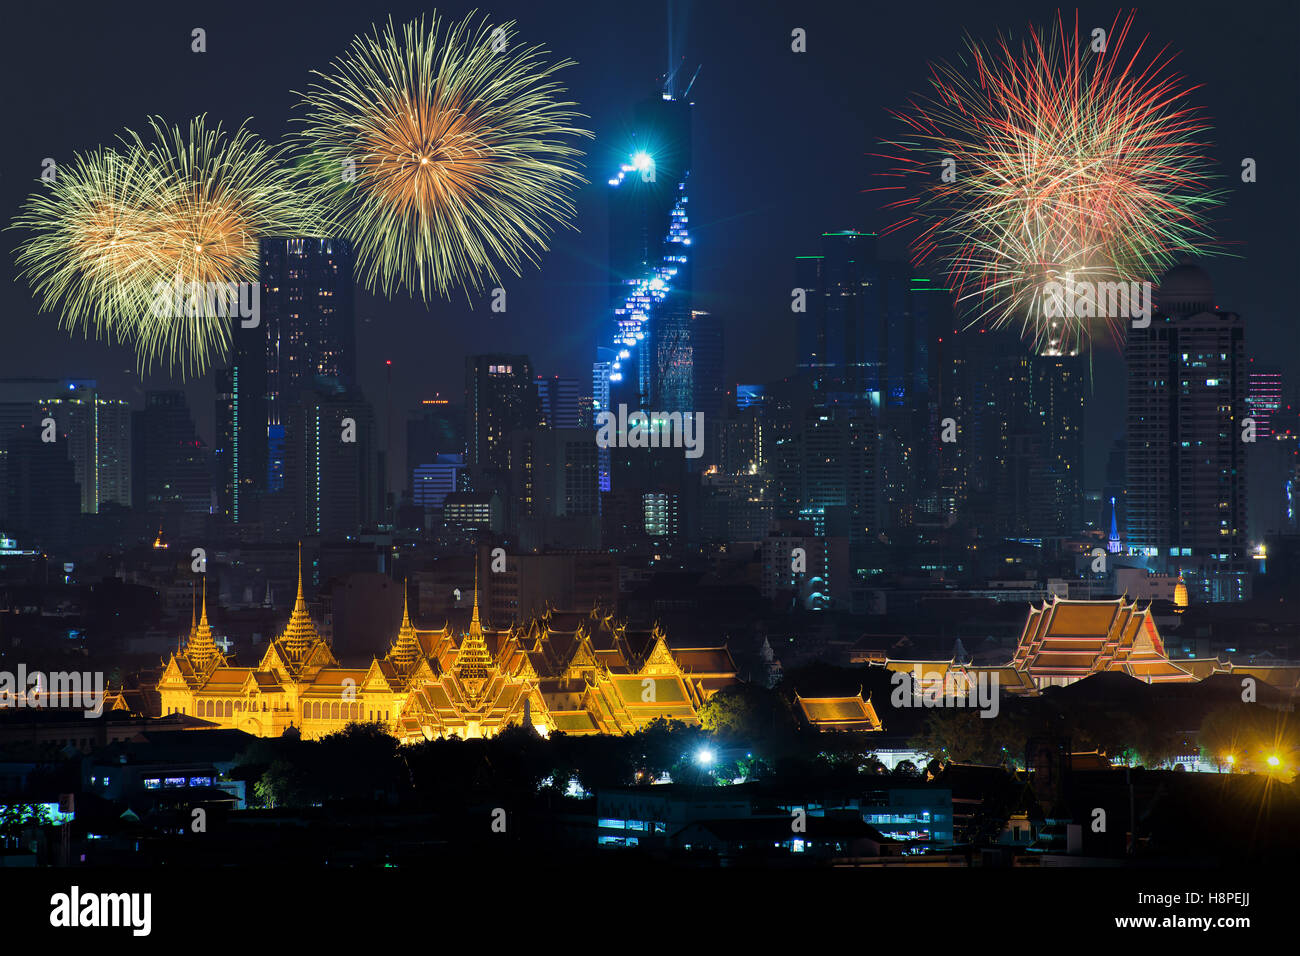 Beautiful fireworks celebrating new year with grand palace and Bangkok city in background at Bangkok, Thailand - Stock Image